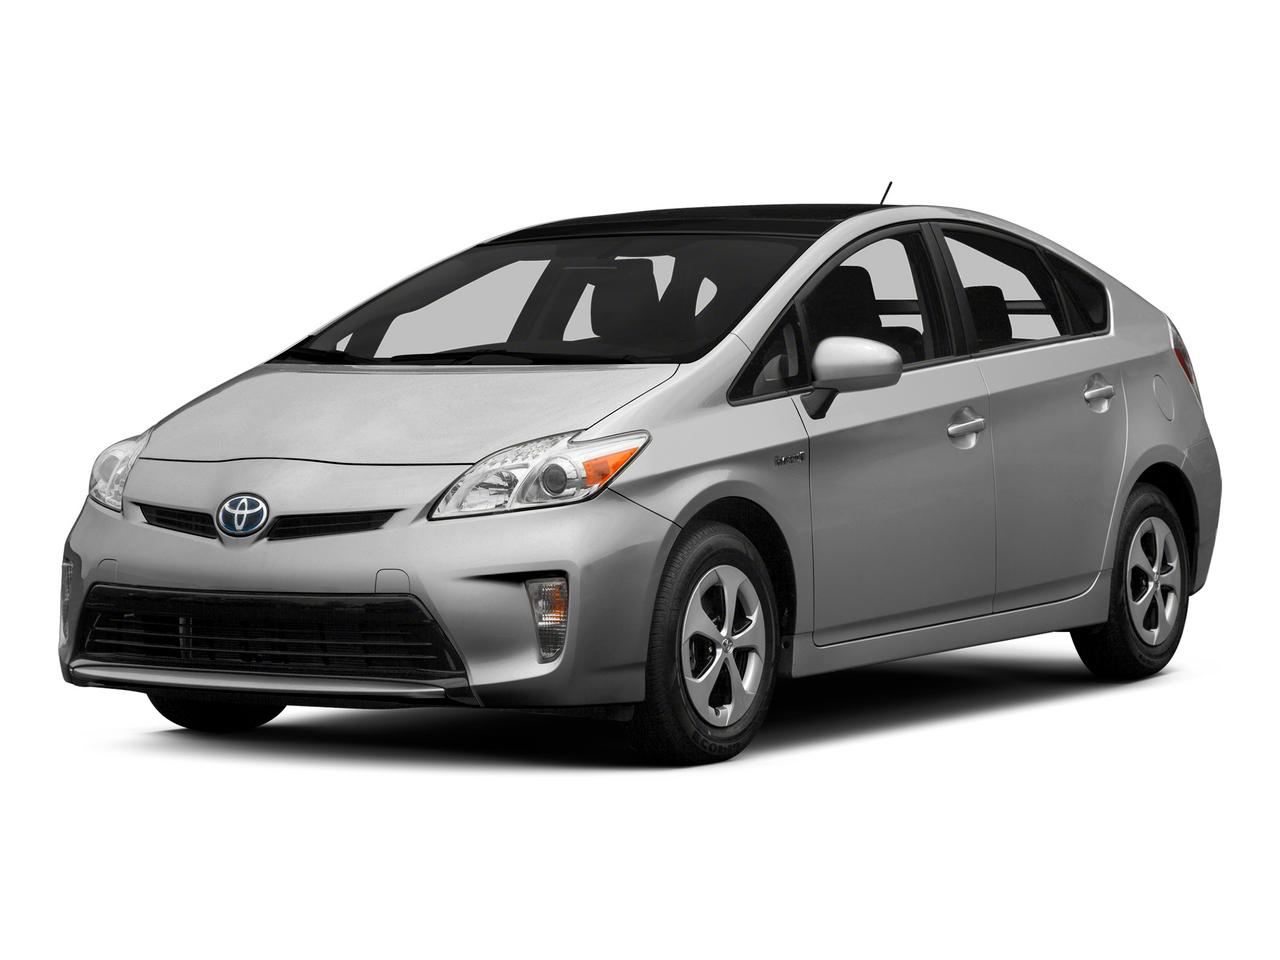 2015 Toyota Prius Vehicle Photo in Doylestown, PA 18902